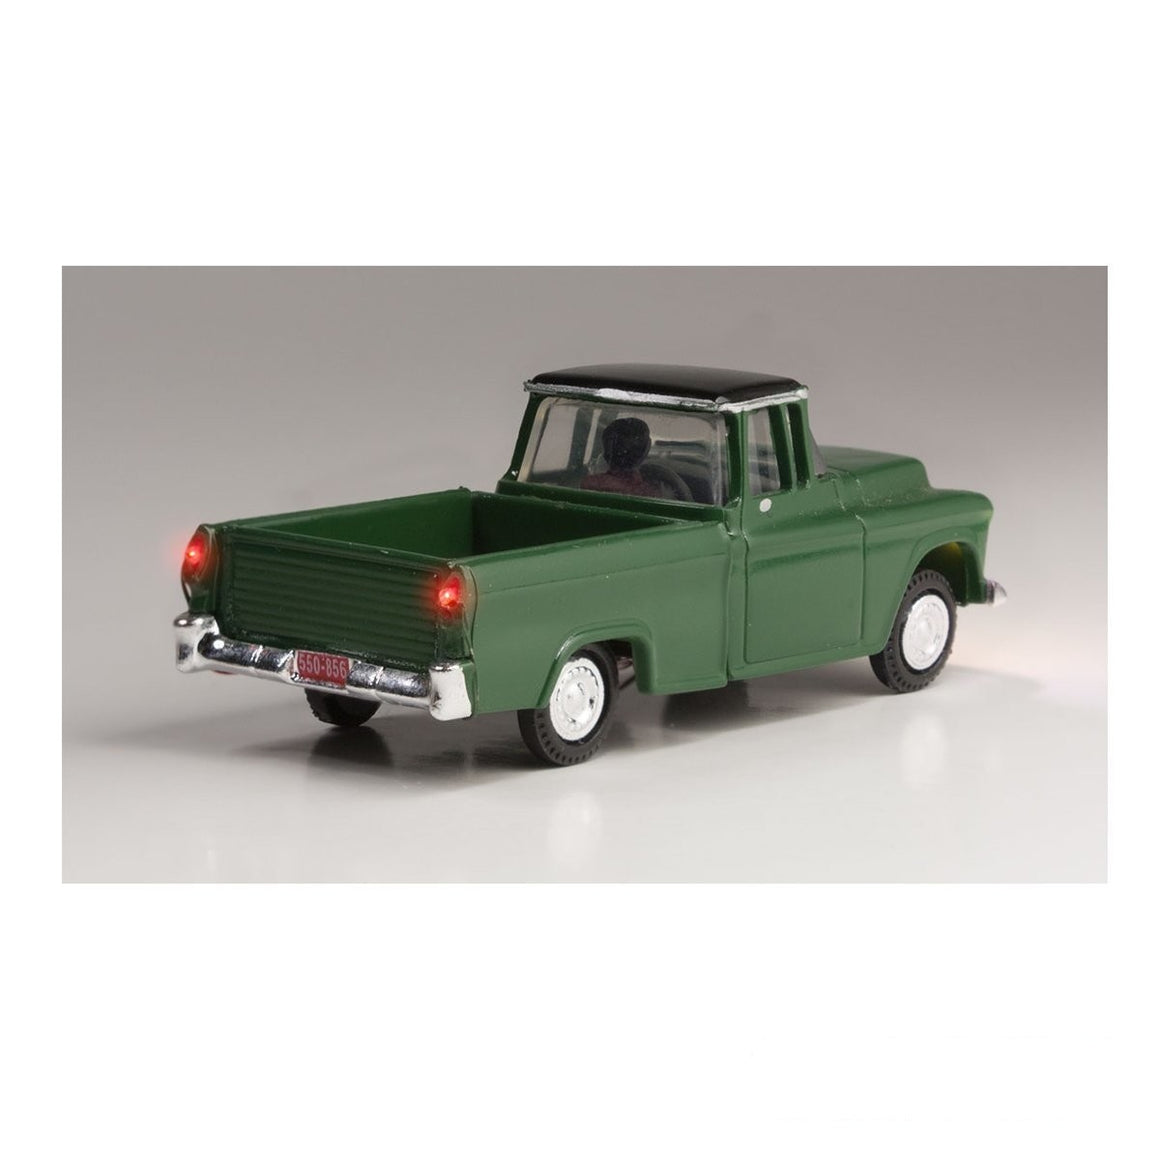 HO Scale: Just Plug® - Lighted Vehicle: Green Pickup